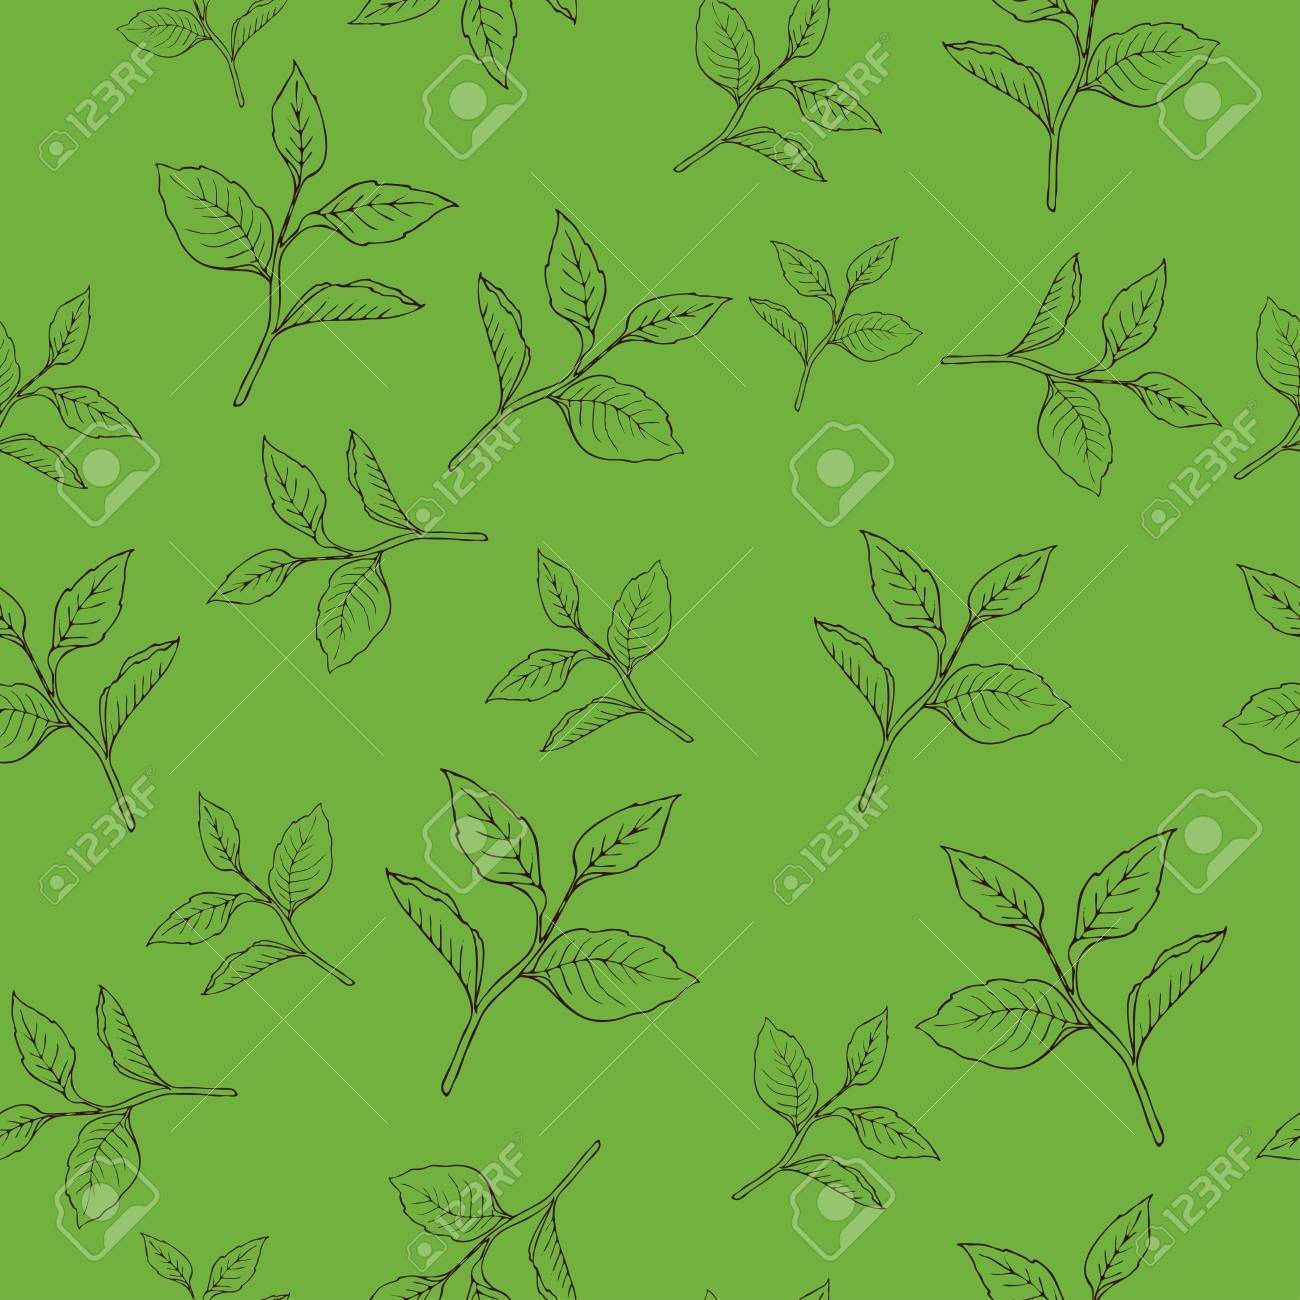 Seamless pattern with tea leaves on green background. Hand drawn vector illustration. - 104628135